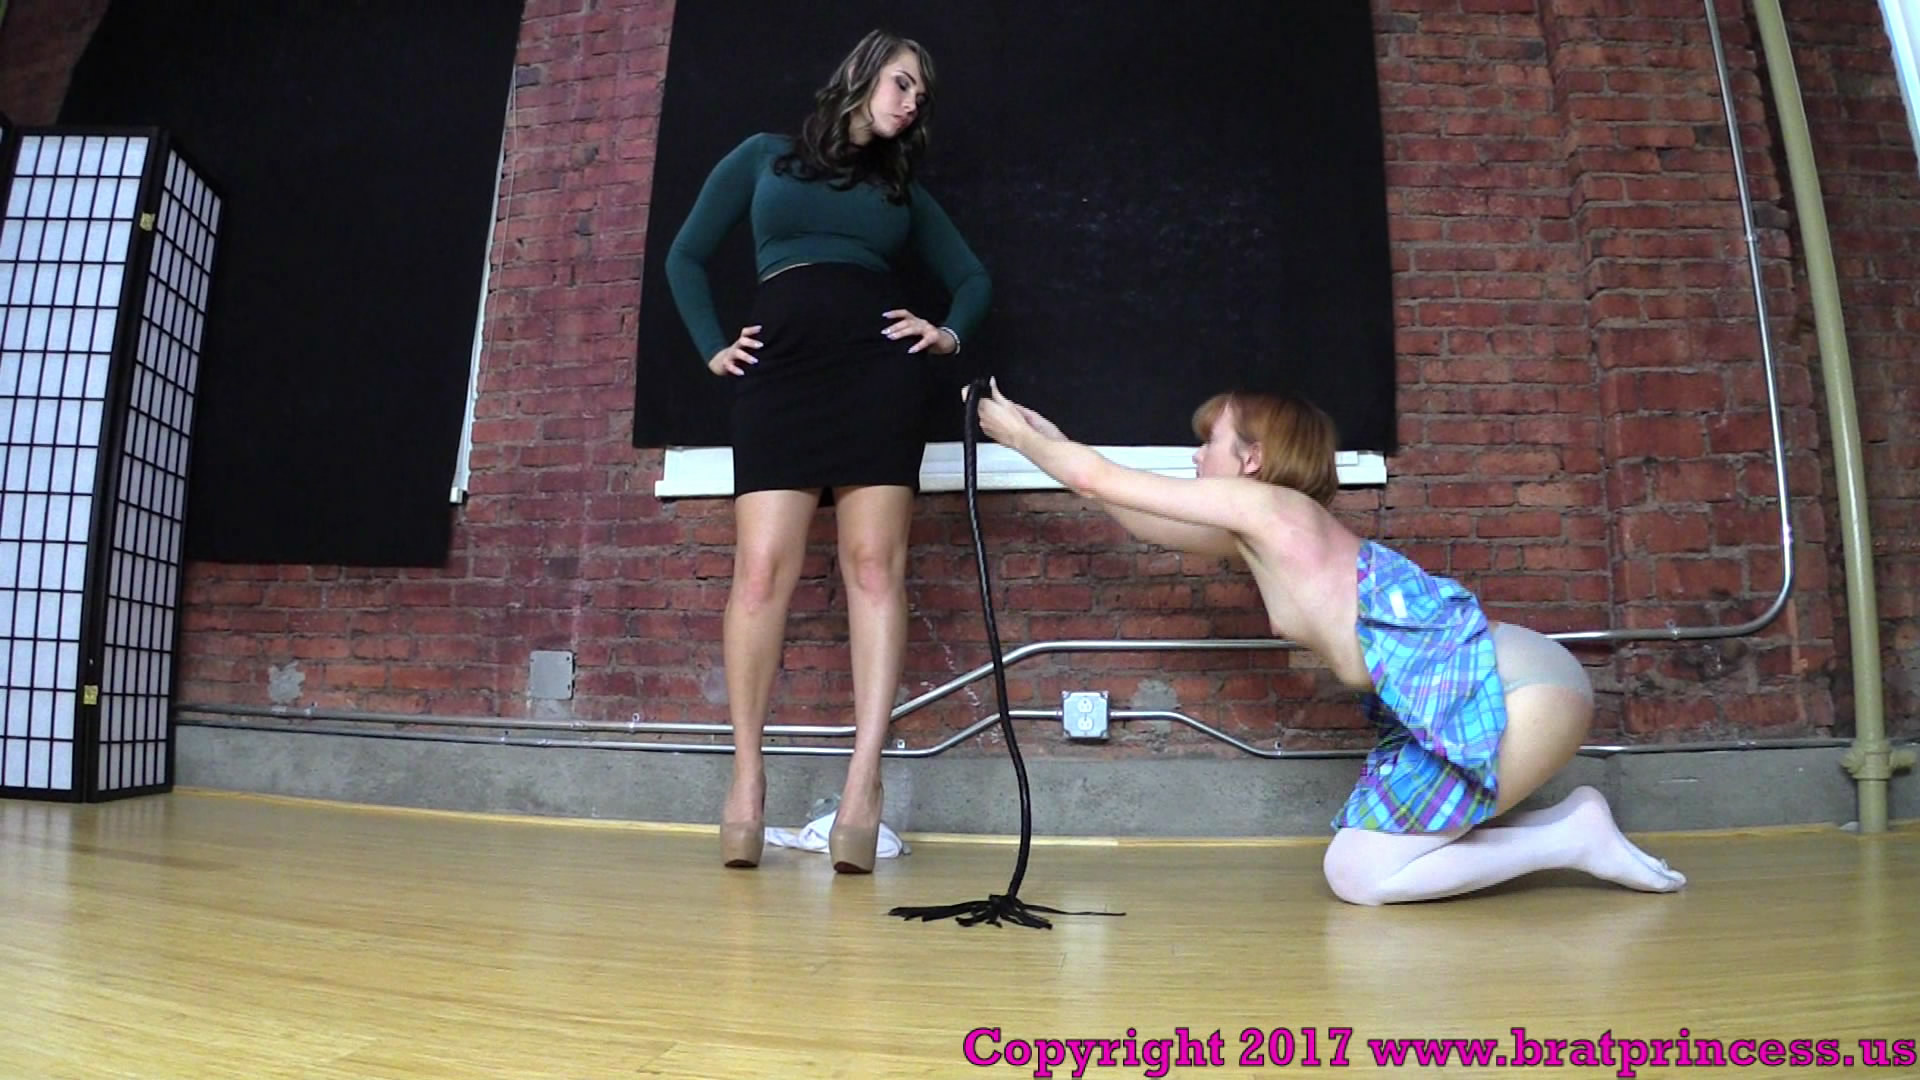 Brat Princess – MP4/Full HD – Lizzy,Natalya – Brutally Whipped for Going through Natalyas Things (1080 HD)